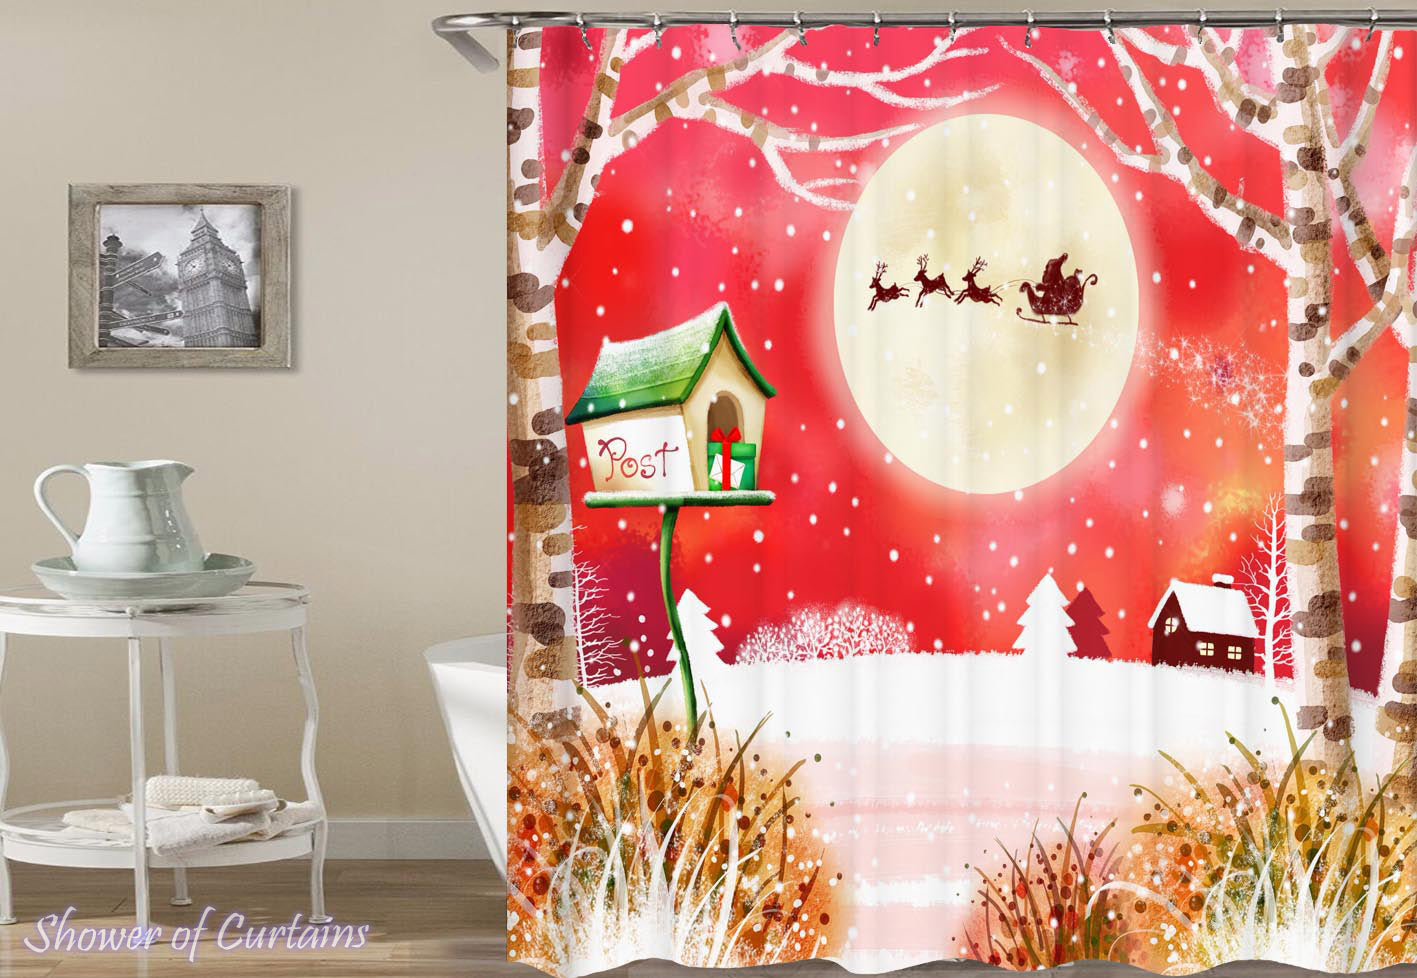 ChristmasThemed Shower Curtains Of Rustic Christmas Painting